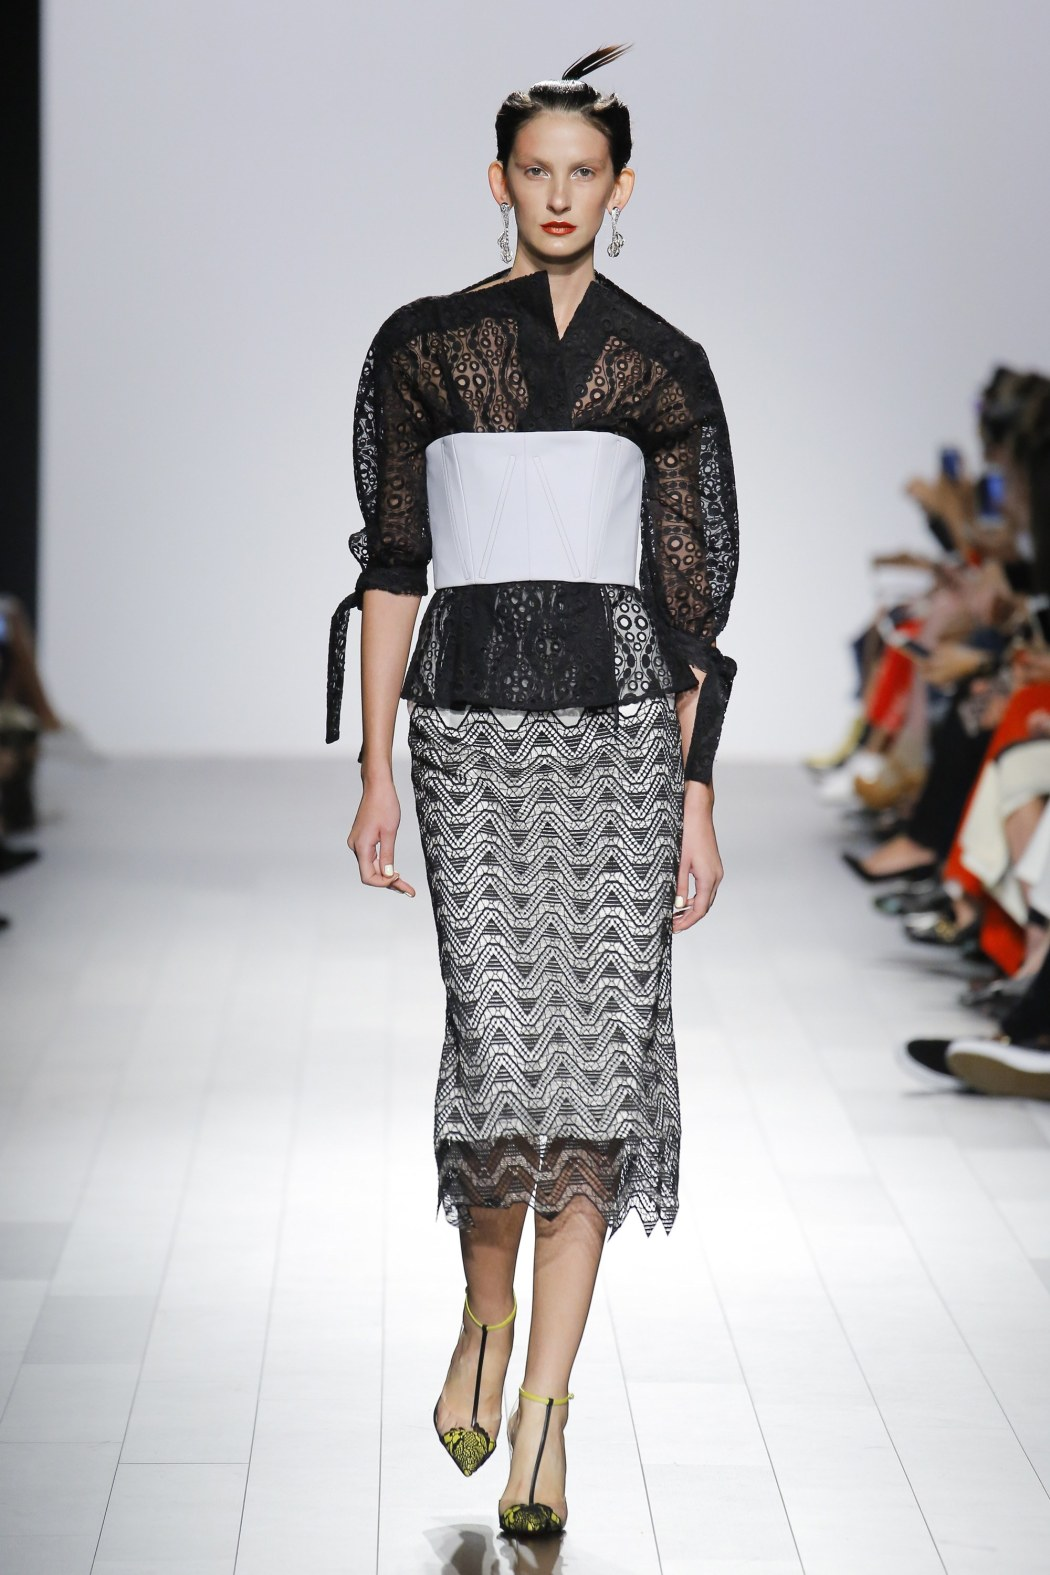 Bibhu Mohapatra Spring 2018 Ready-to-Wear Collection at New York Fashion Week